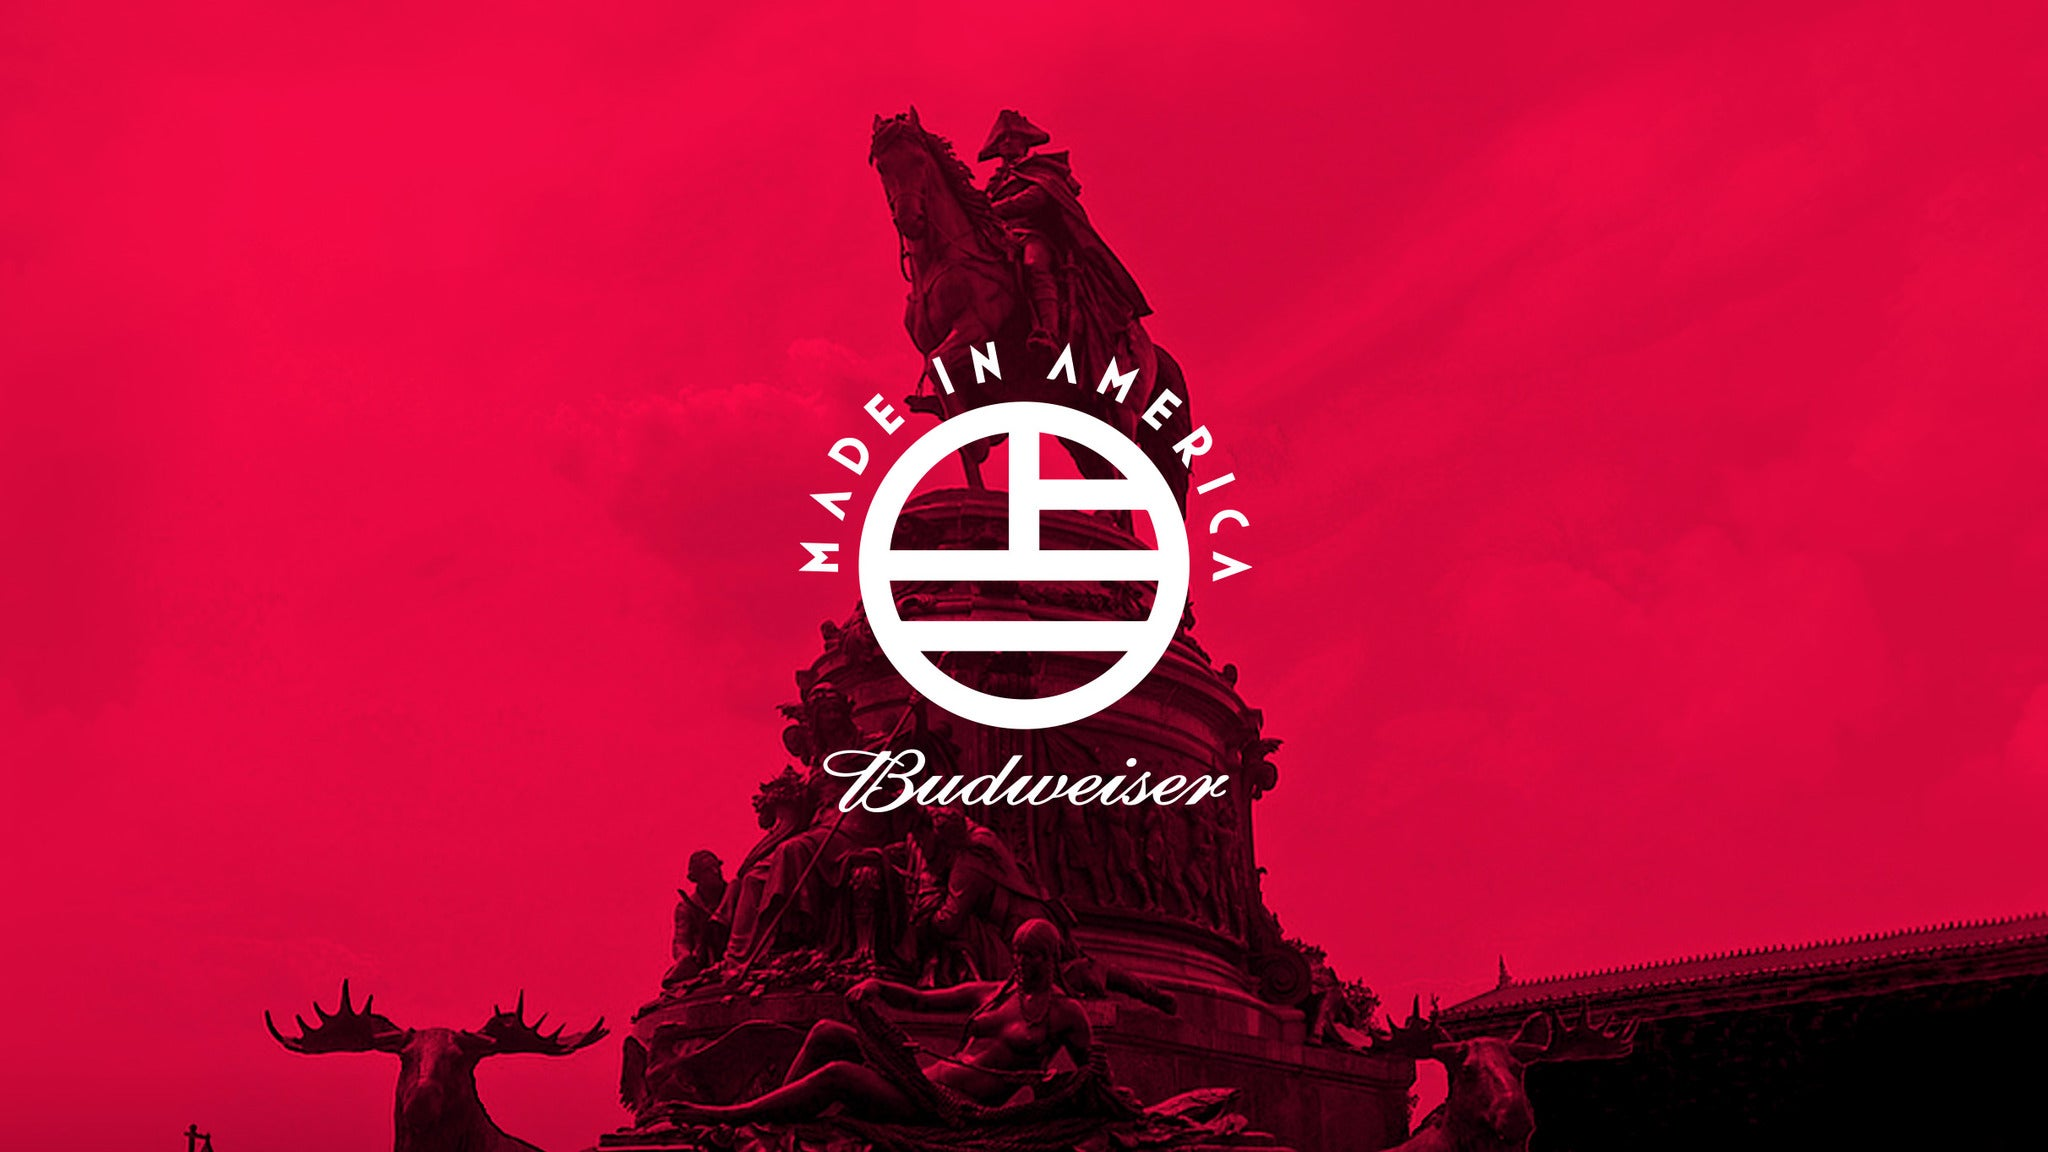 Budweiser Made in America Festival at Ben Franklin Parkway